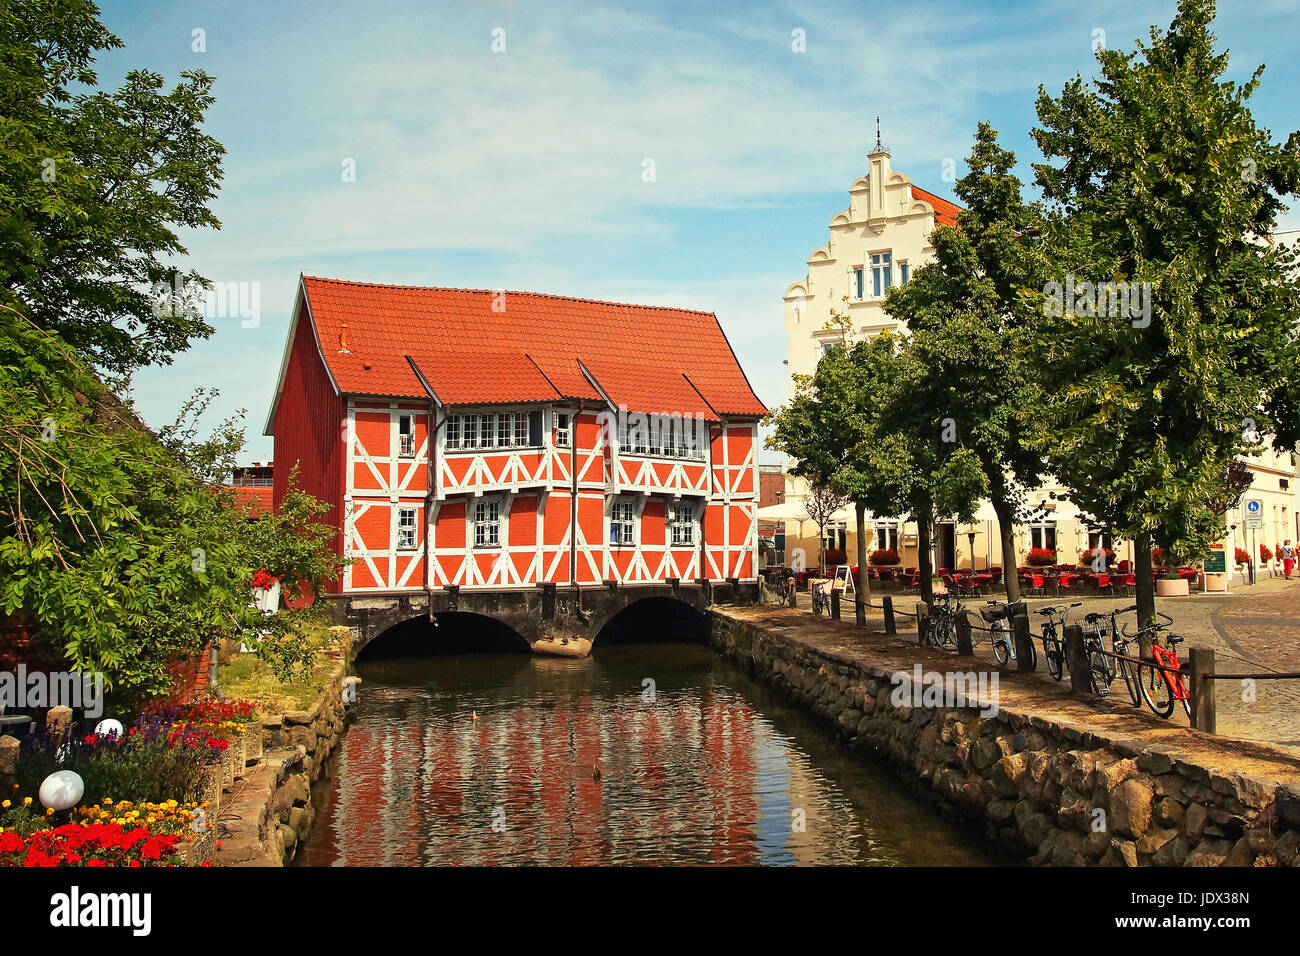 Hansestadt Wismar Deutschland / Hanseatic City Wismar Germany - Stock Image